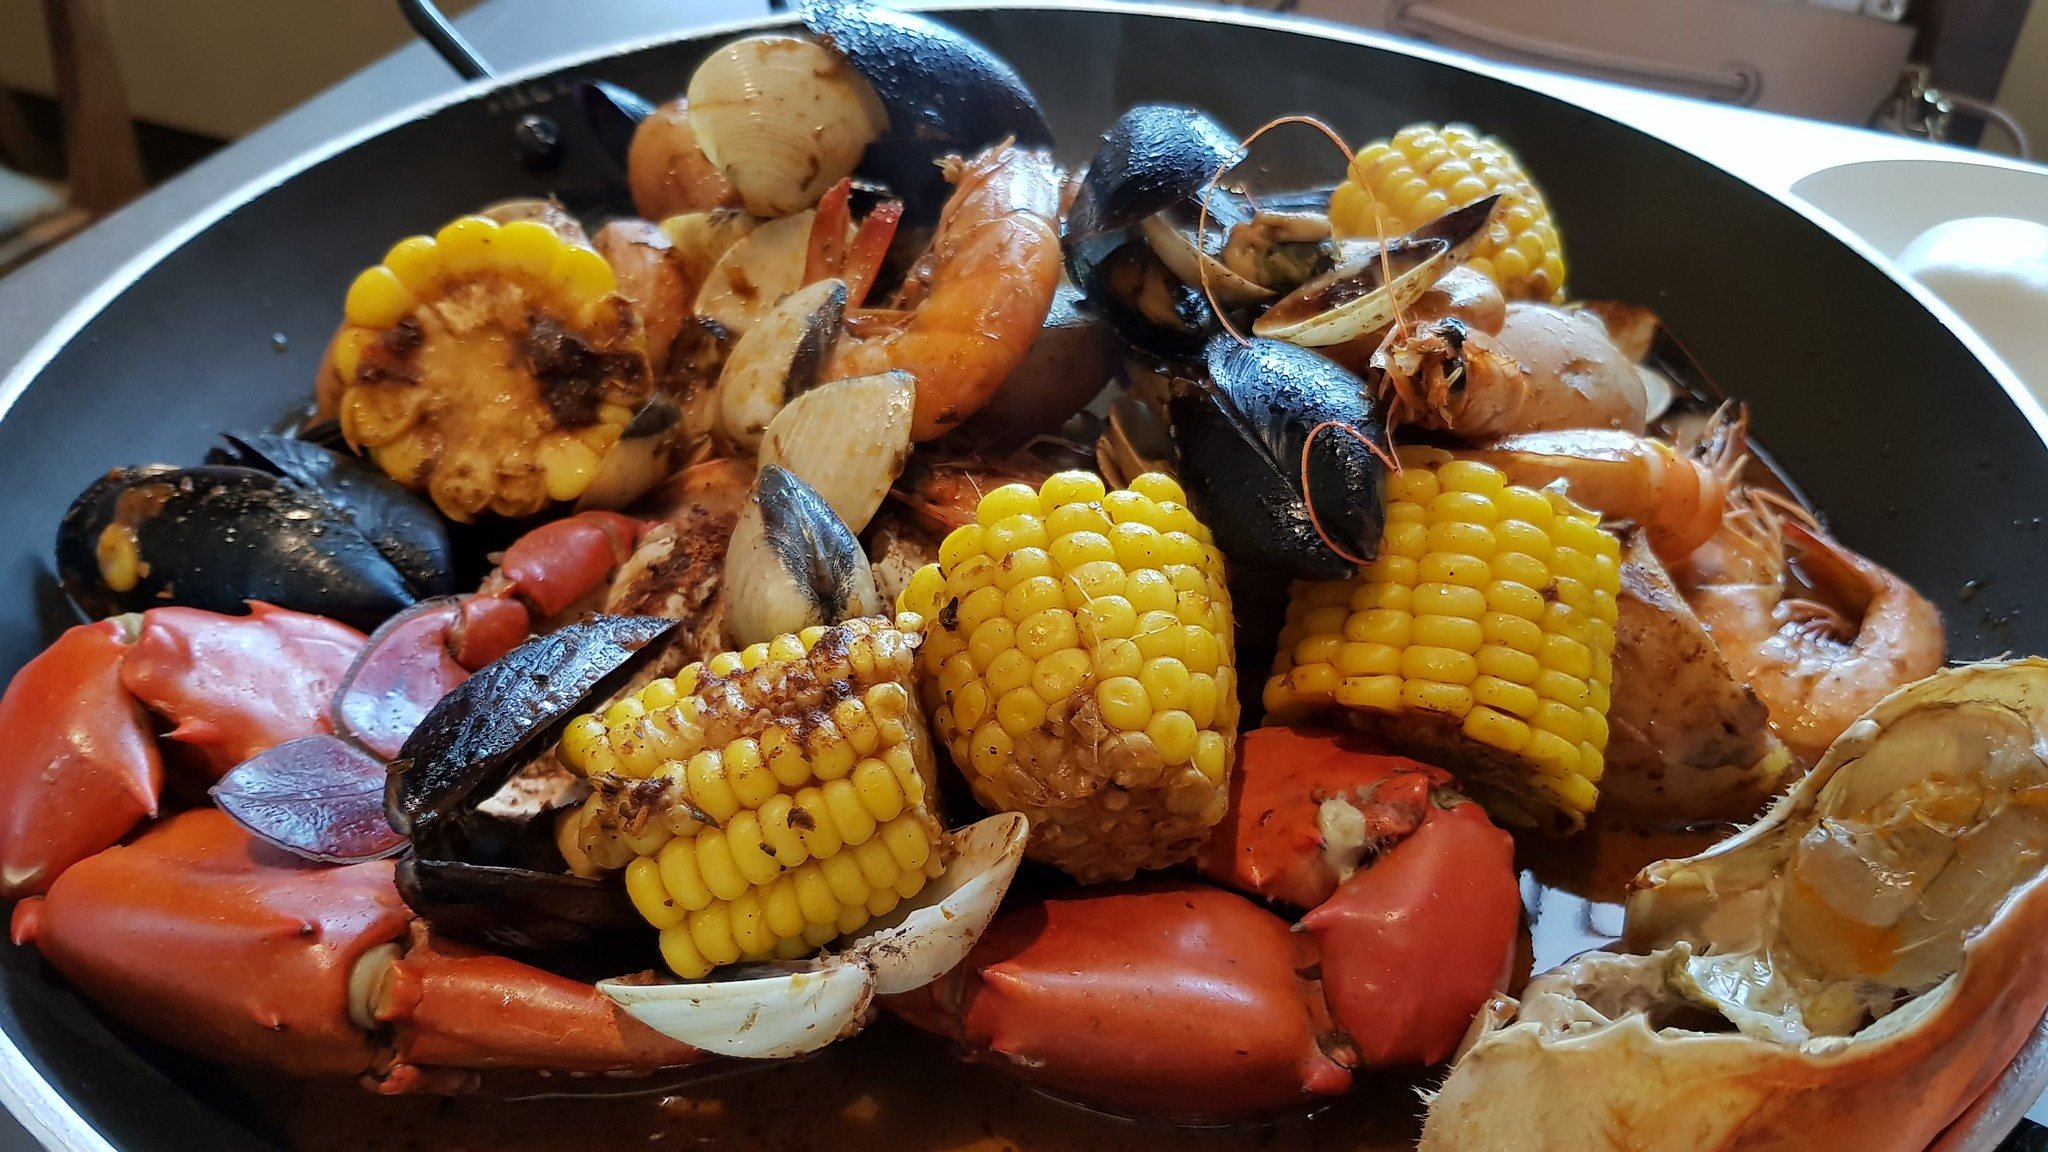 4. Baked Seafood 2